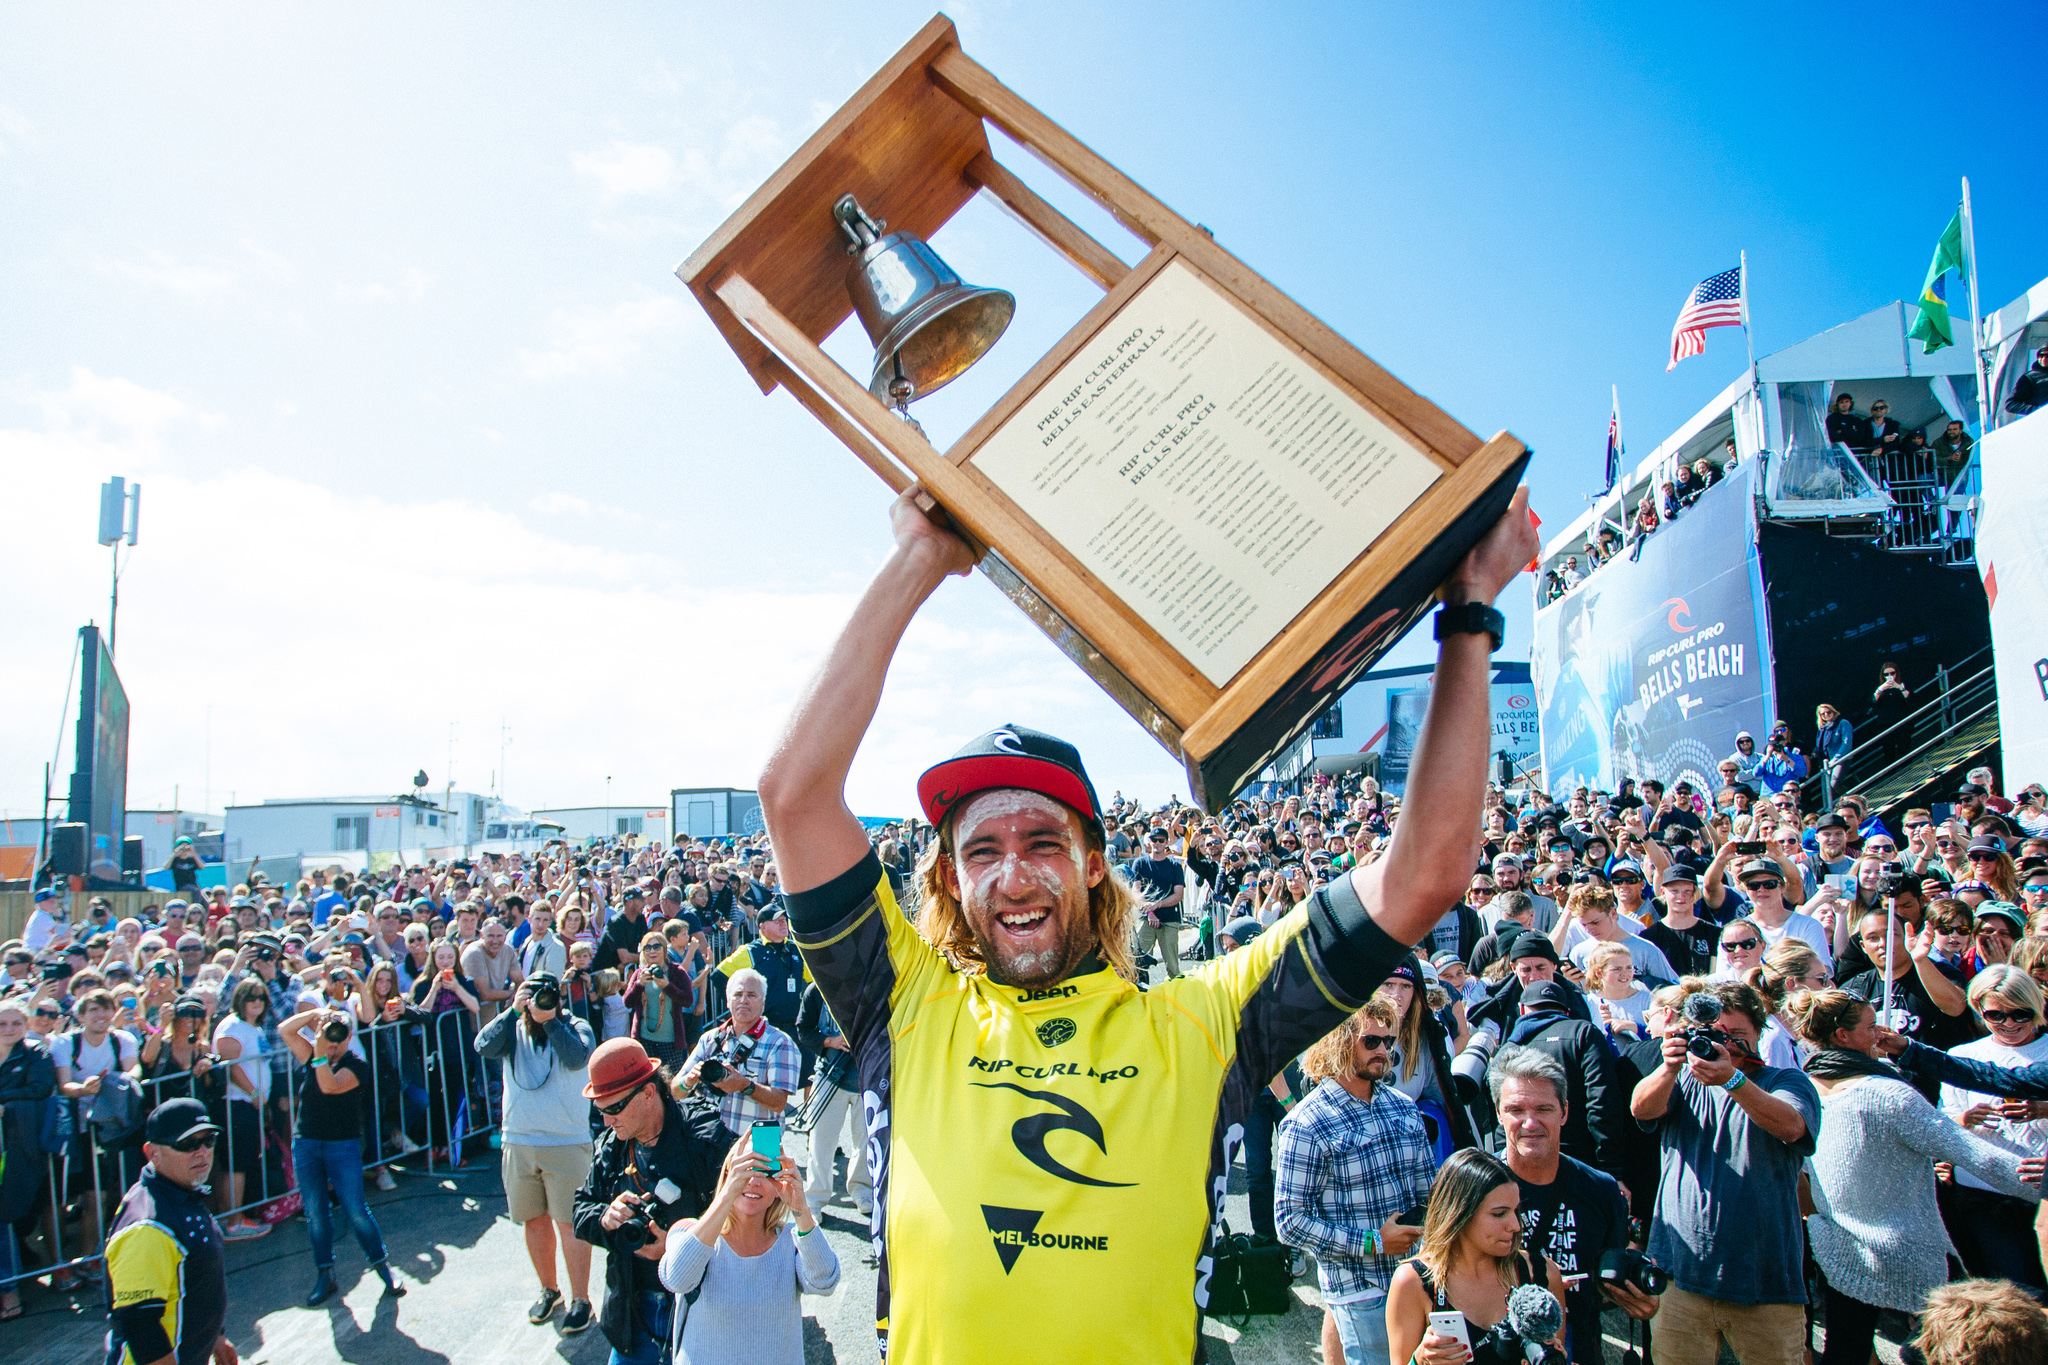 Matt Wilkinson of Australia (pictured) hoists his bell after winning the Rip Curl Pro Bells Beach on Sunday April 3, 2016. PHOTO: © WSL/ Sloane SOCIAL: @wsl @edsloanephoto This image is the copyright of the World Surf League and is provided royalty free for editorial use only, in all media now known or hereafter created. No commercial rights granted. Sale or license of the images is prohibited. This image is a factually accurate rendering of what it depicts and has not been modified or augmented except for standard cropping and toning. ALL RIGHTS RESERVED.